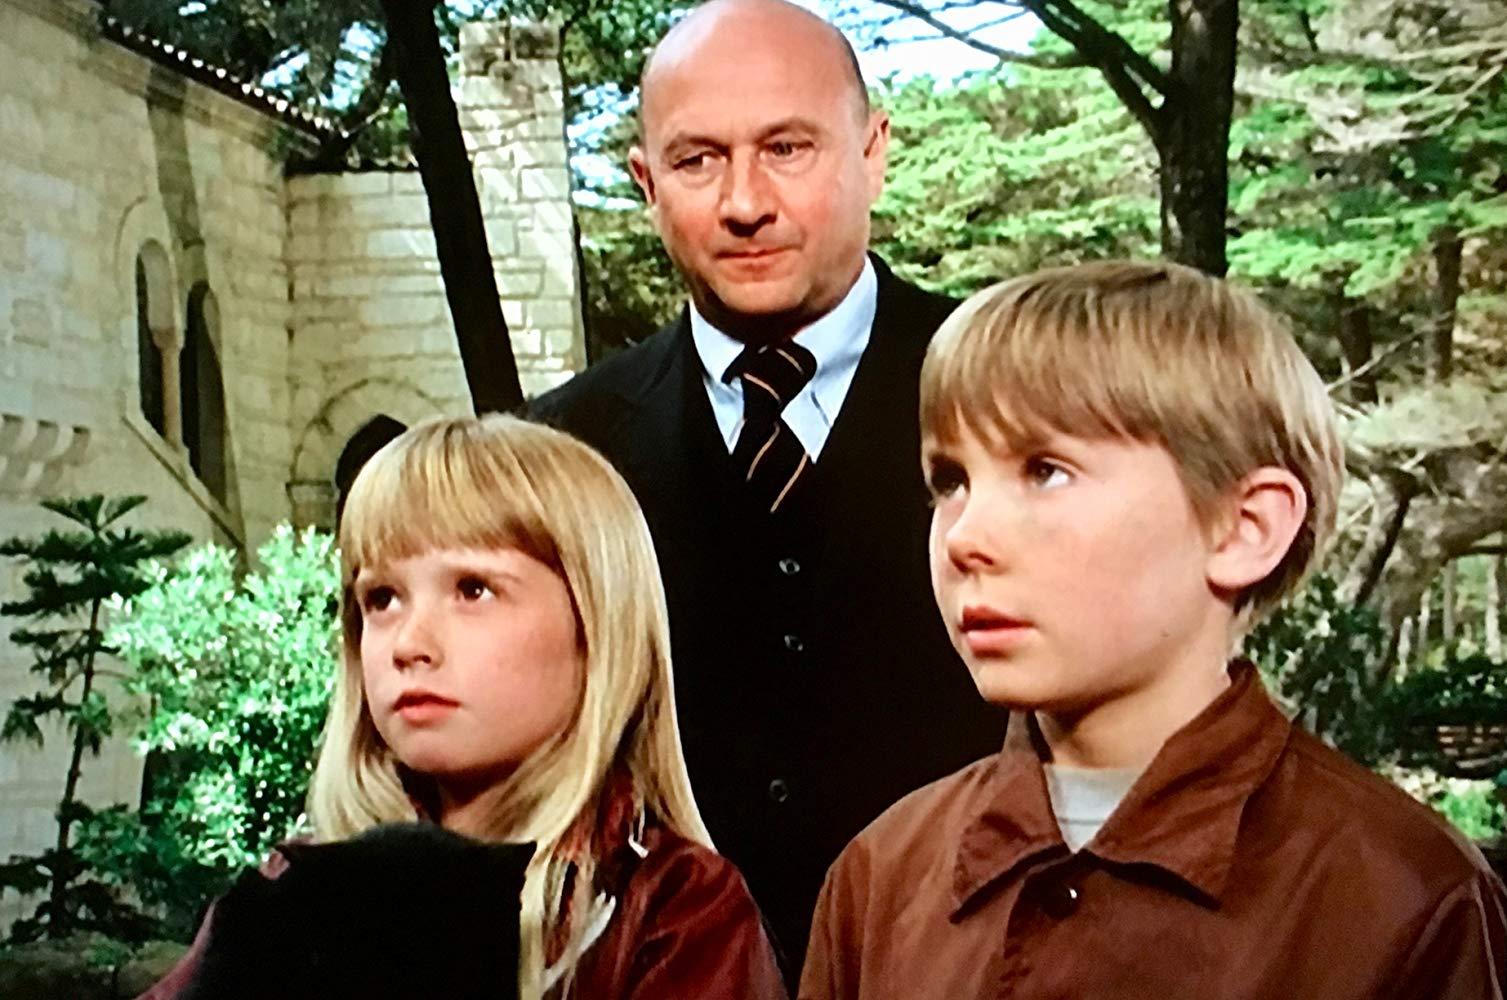 Psychically gitted alien children Tia (Kim Richards) and Tony (Ike Eisenmann) with pursuing henchman Lucas Derenian (Donald Pleasence) in the background in Escape to Witch Mountain (1975)